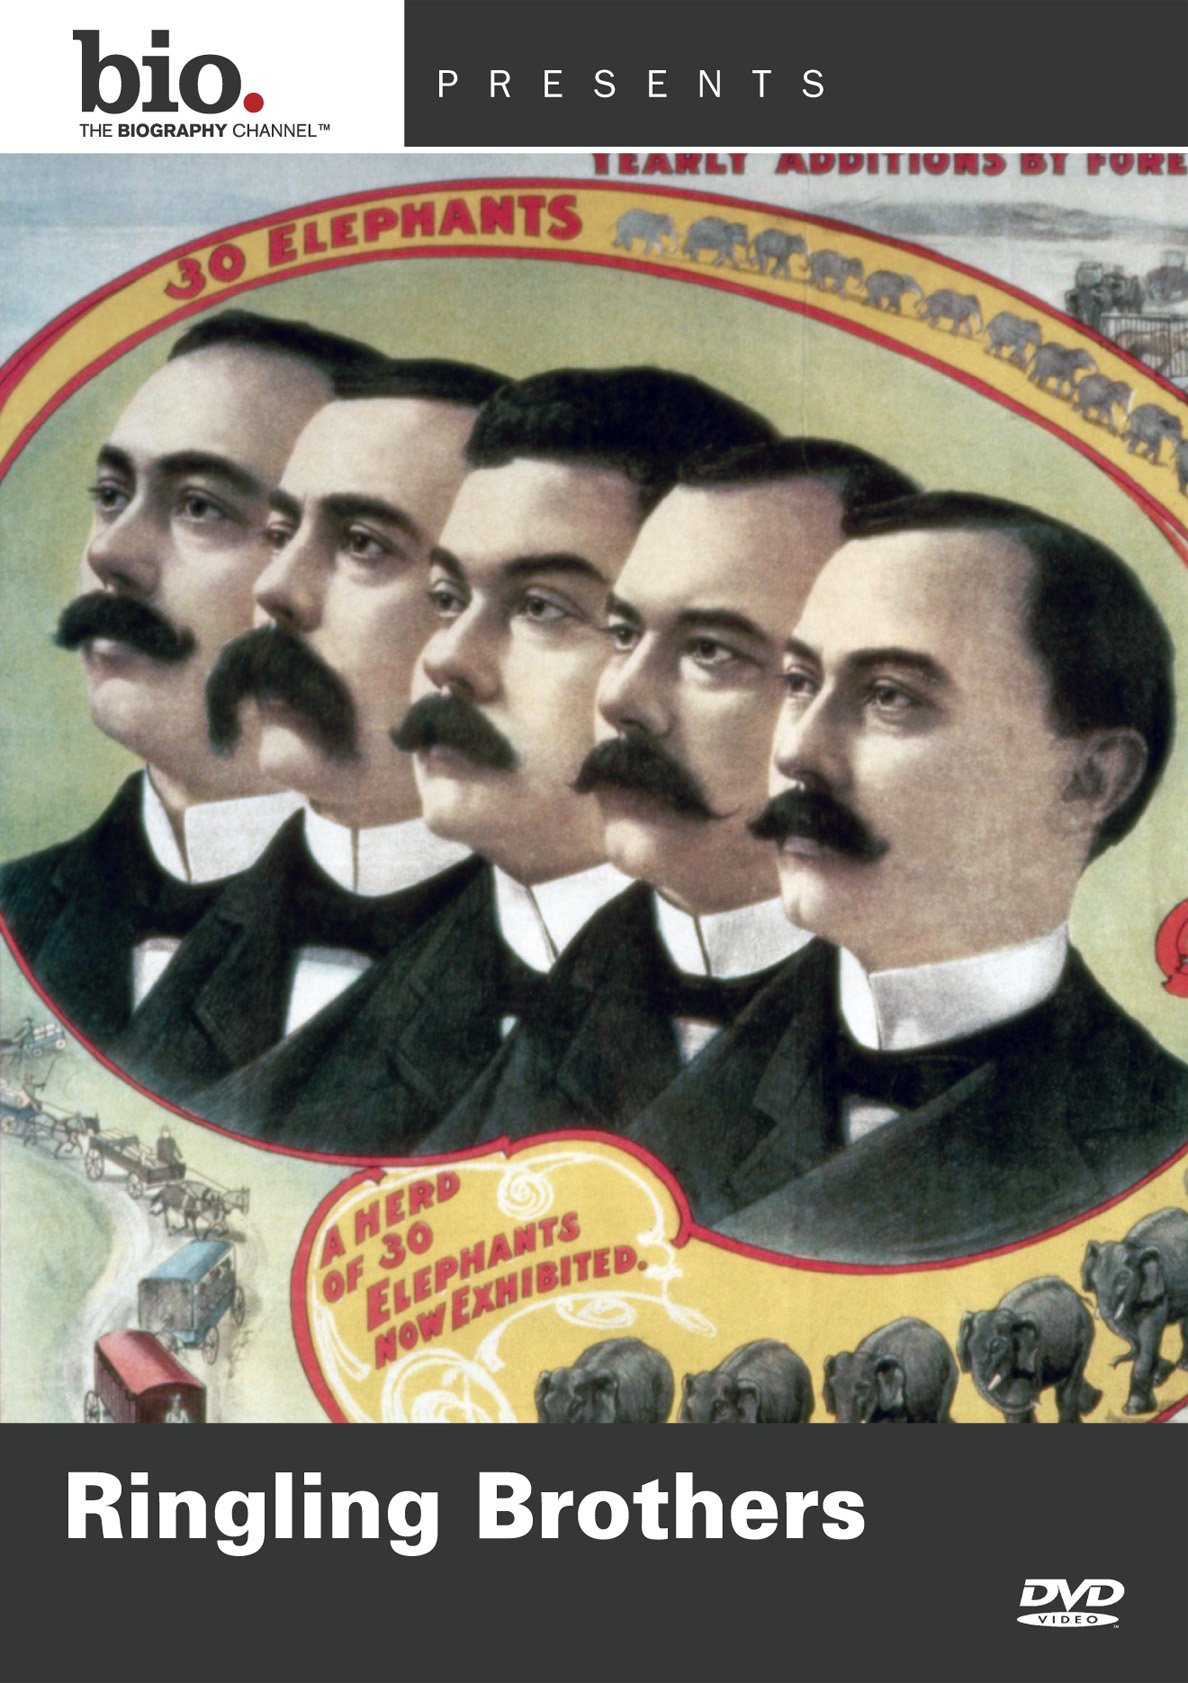 Biography: Ringling Brothers